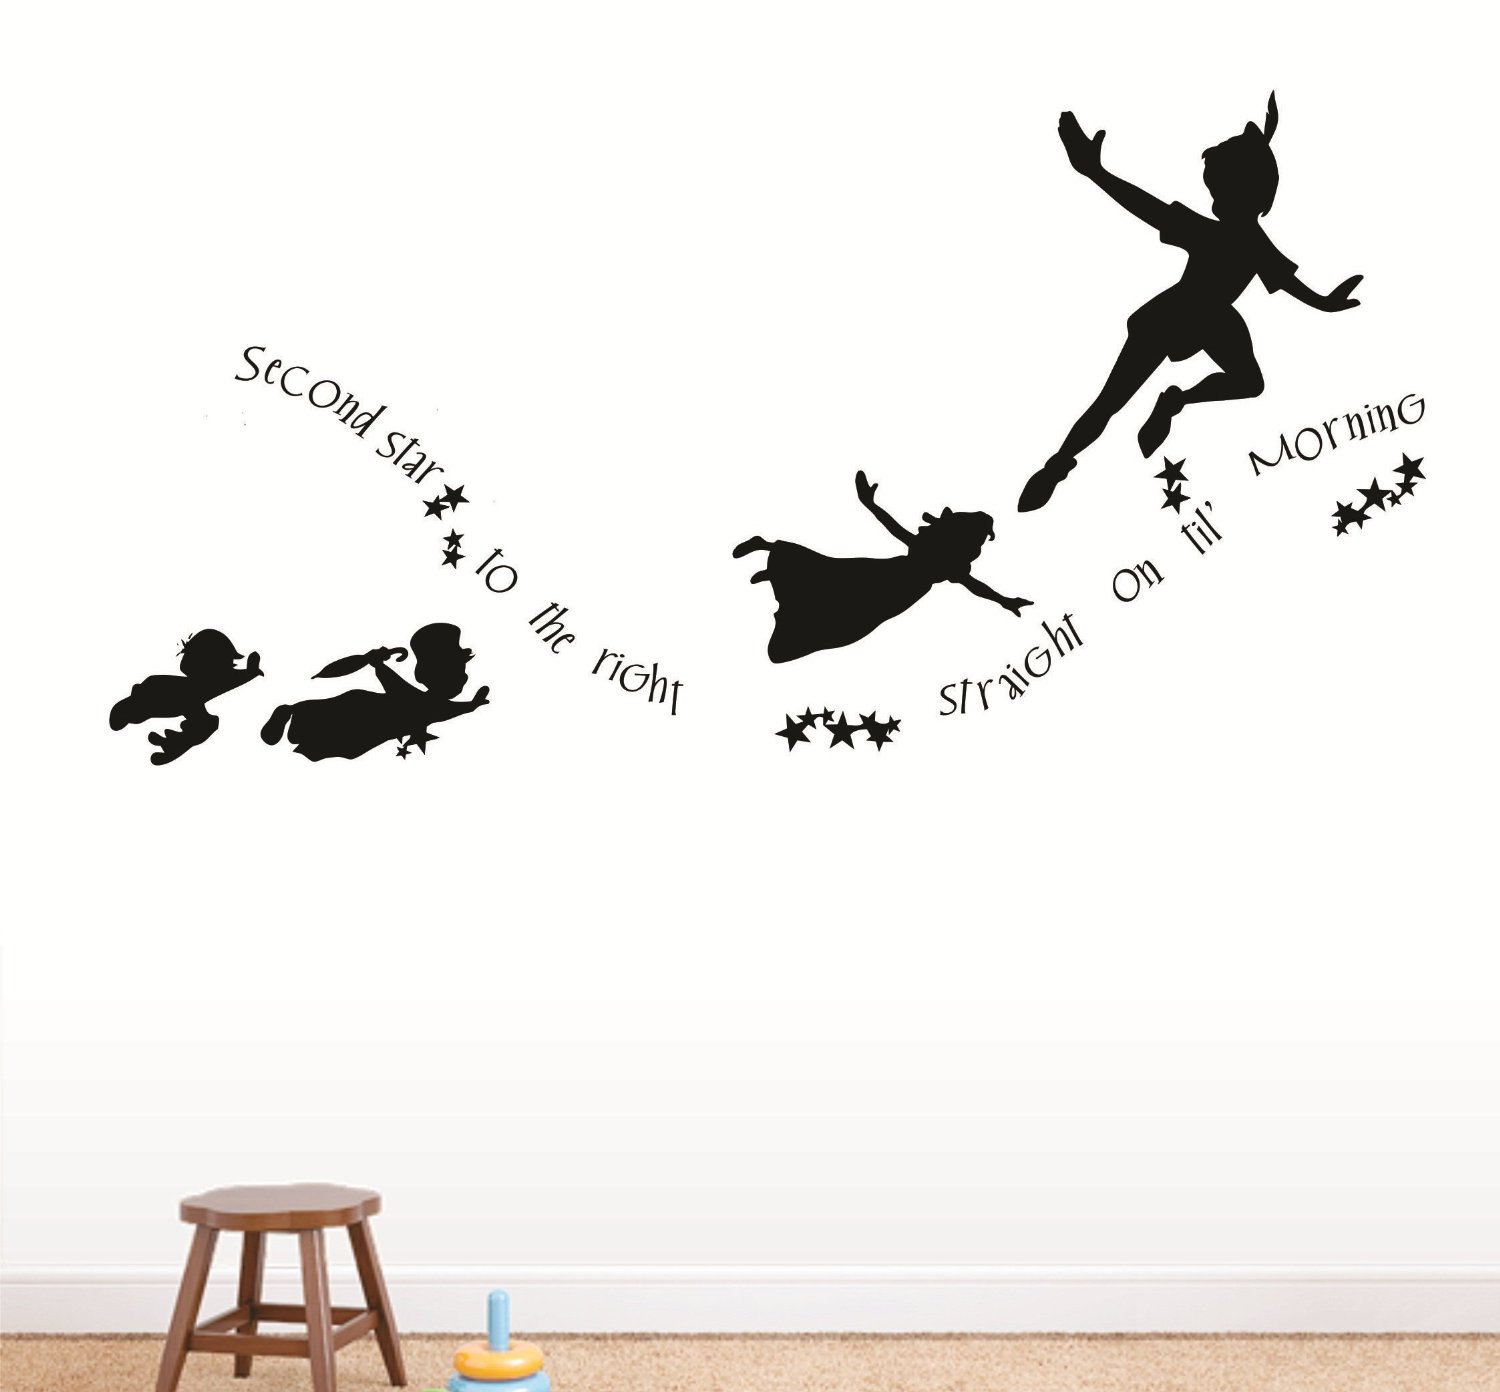 Peter Pan Silhouette Clipart - Clipart Kid